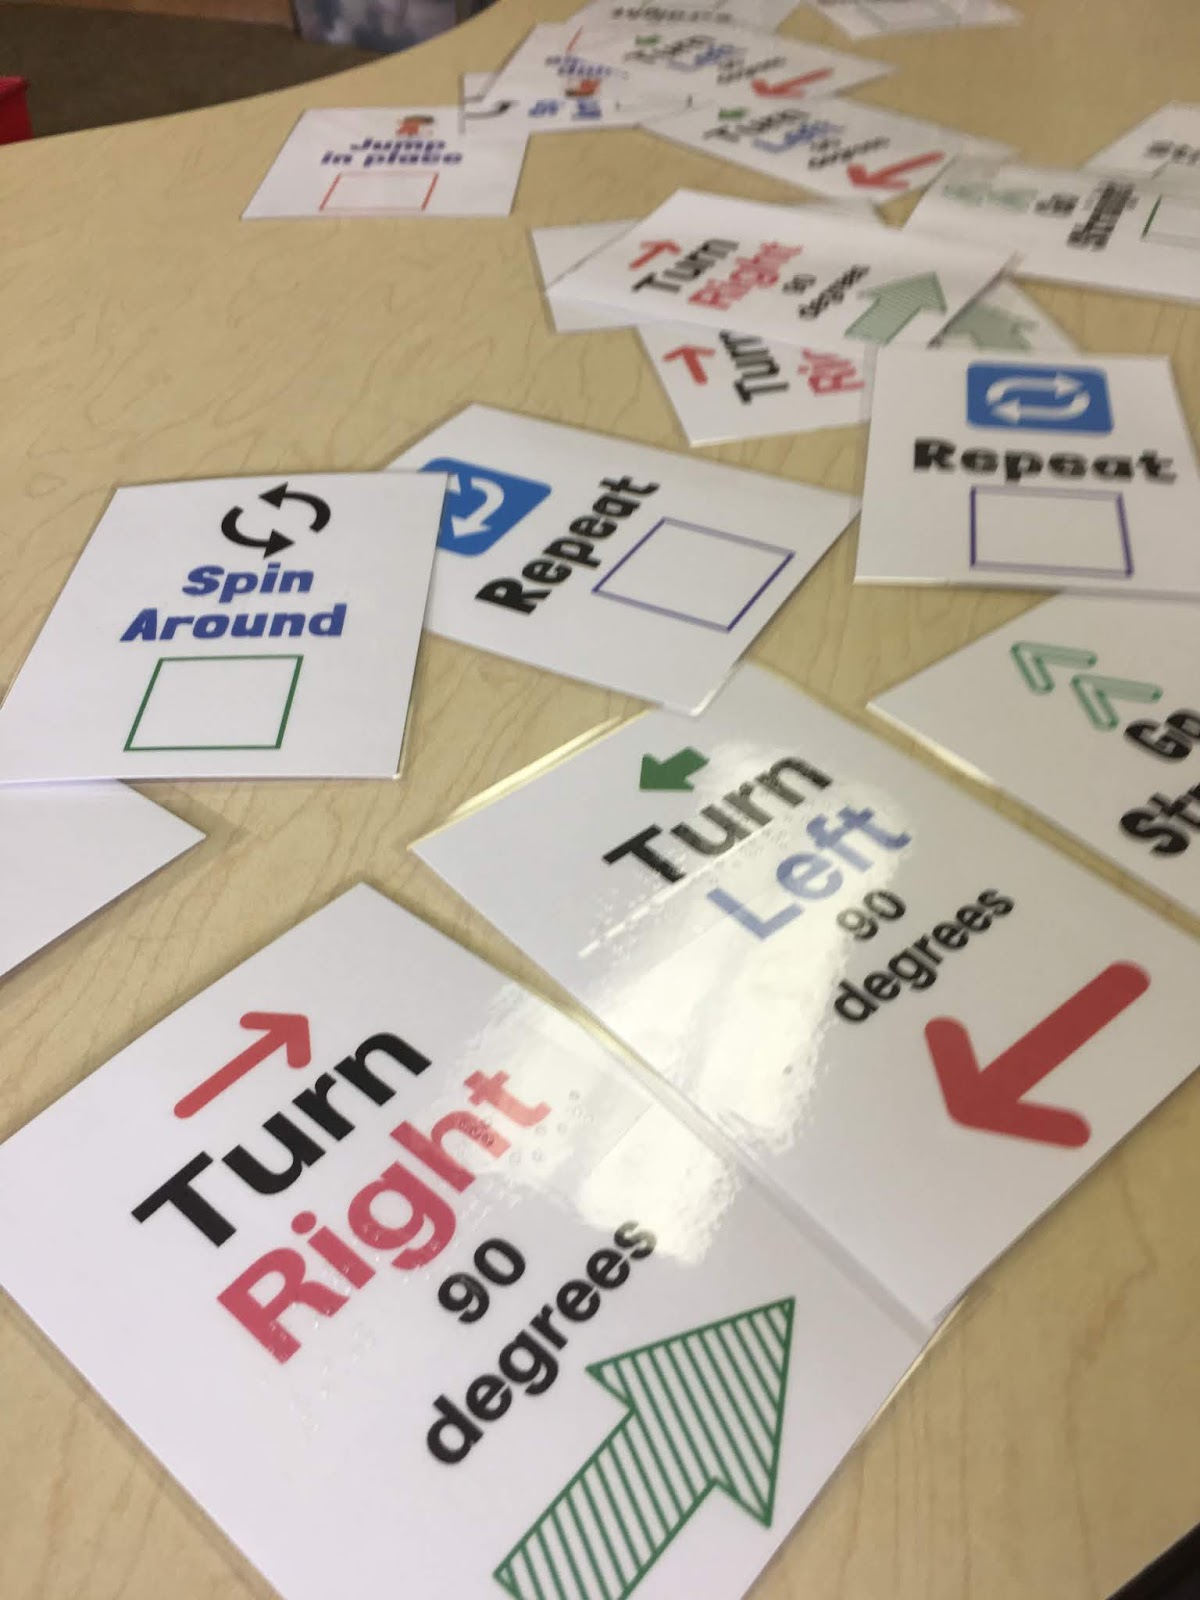 The offline coding cards are scattered on a table.